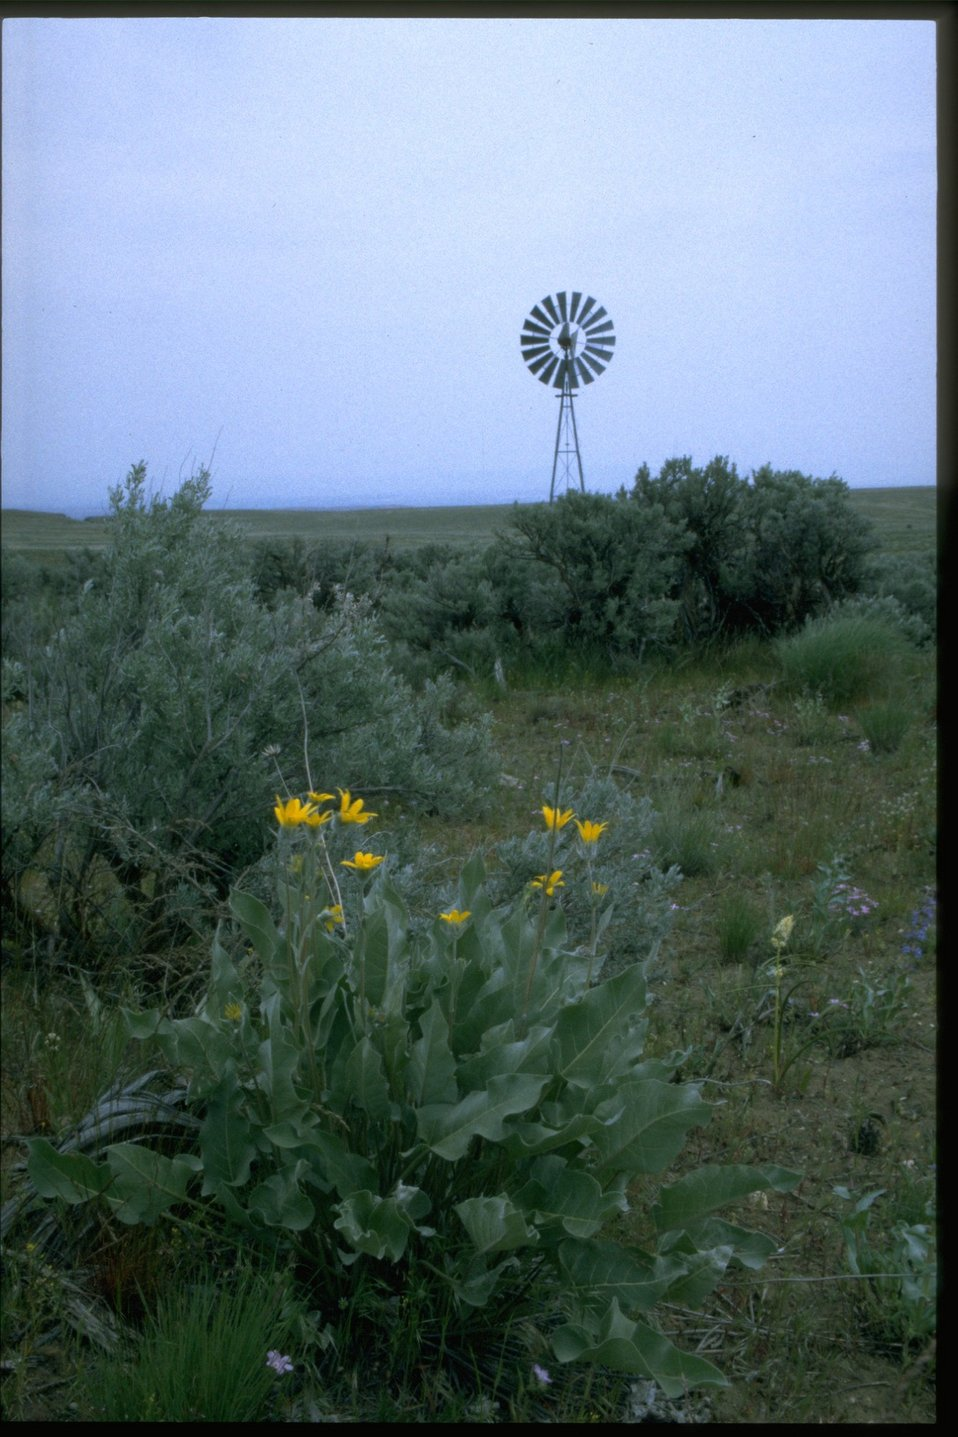 Wind Mill with Balsam wildflowers in foreground.